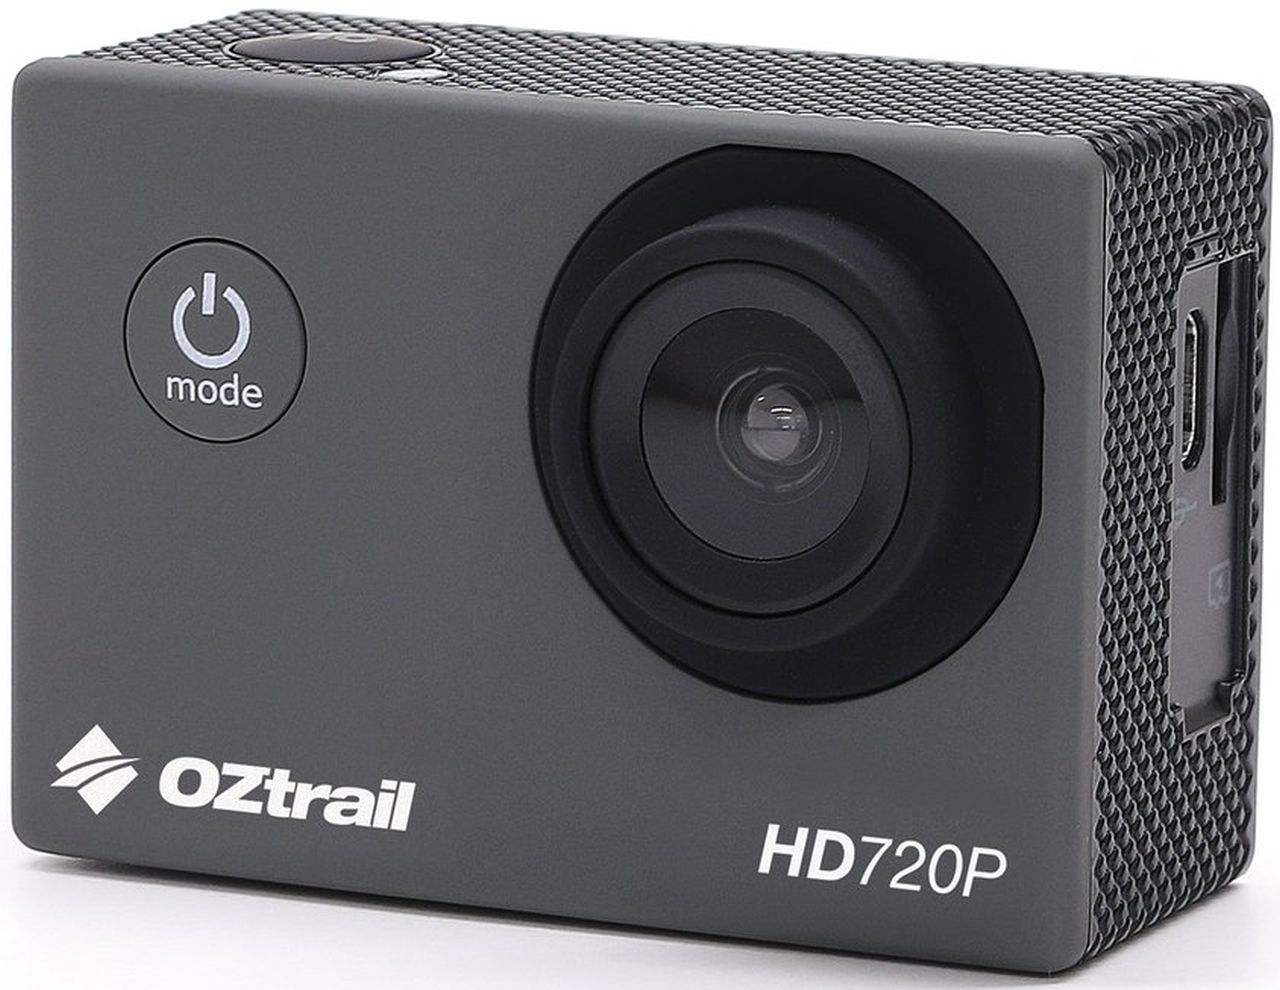 Oztrail - 720P Action Camera - Grey